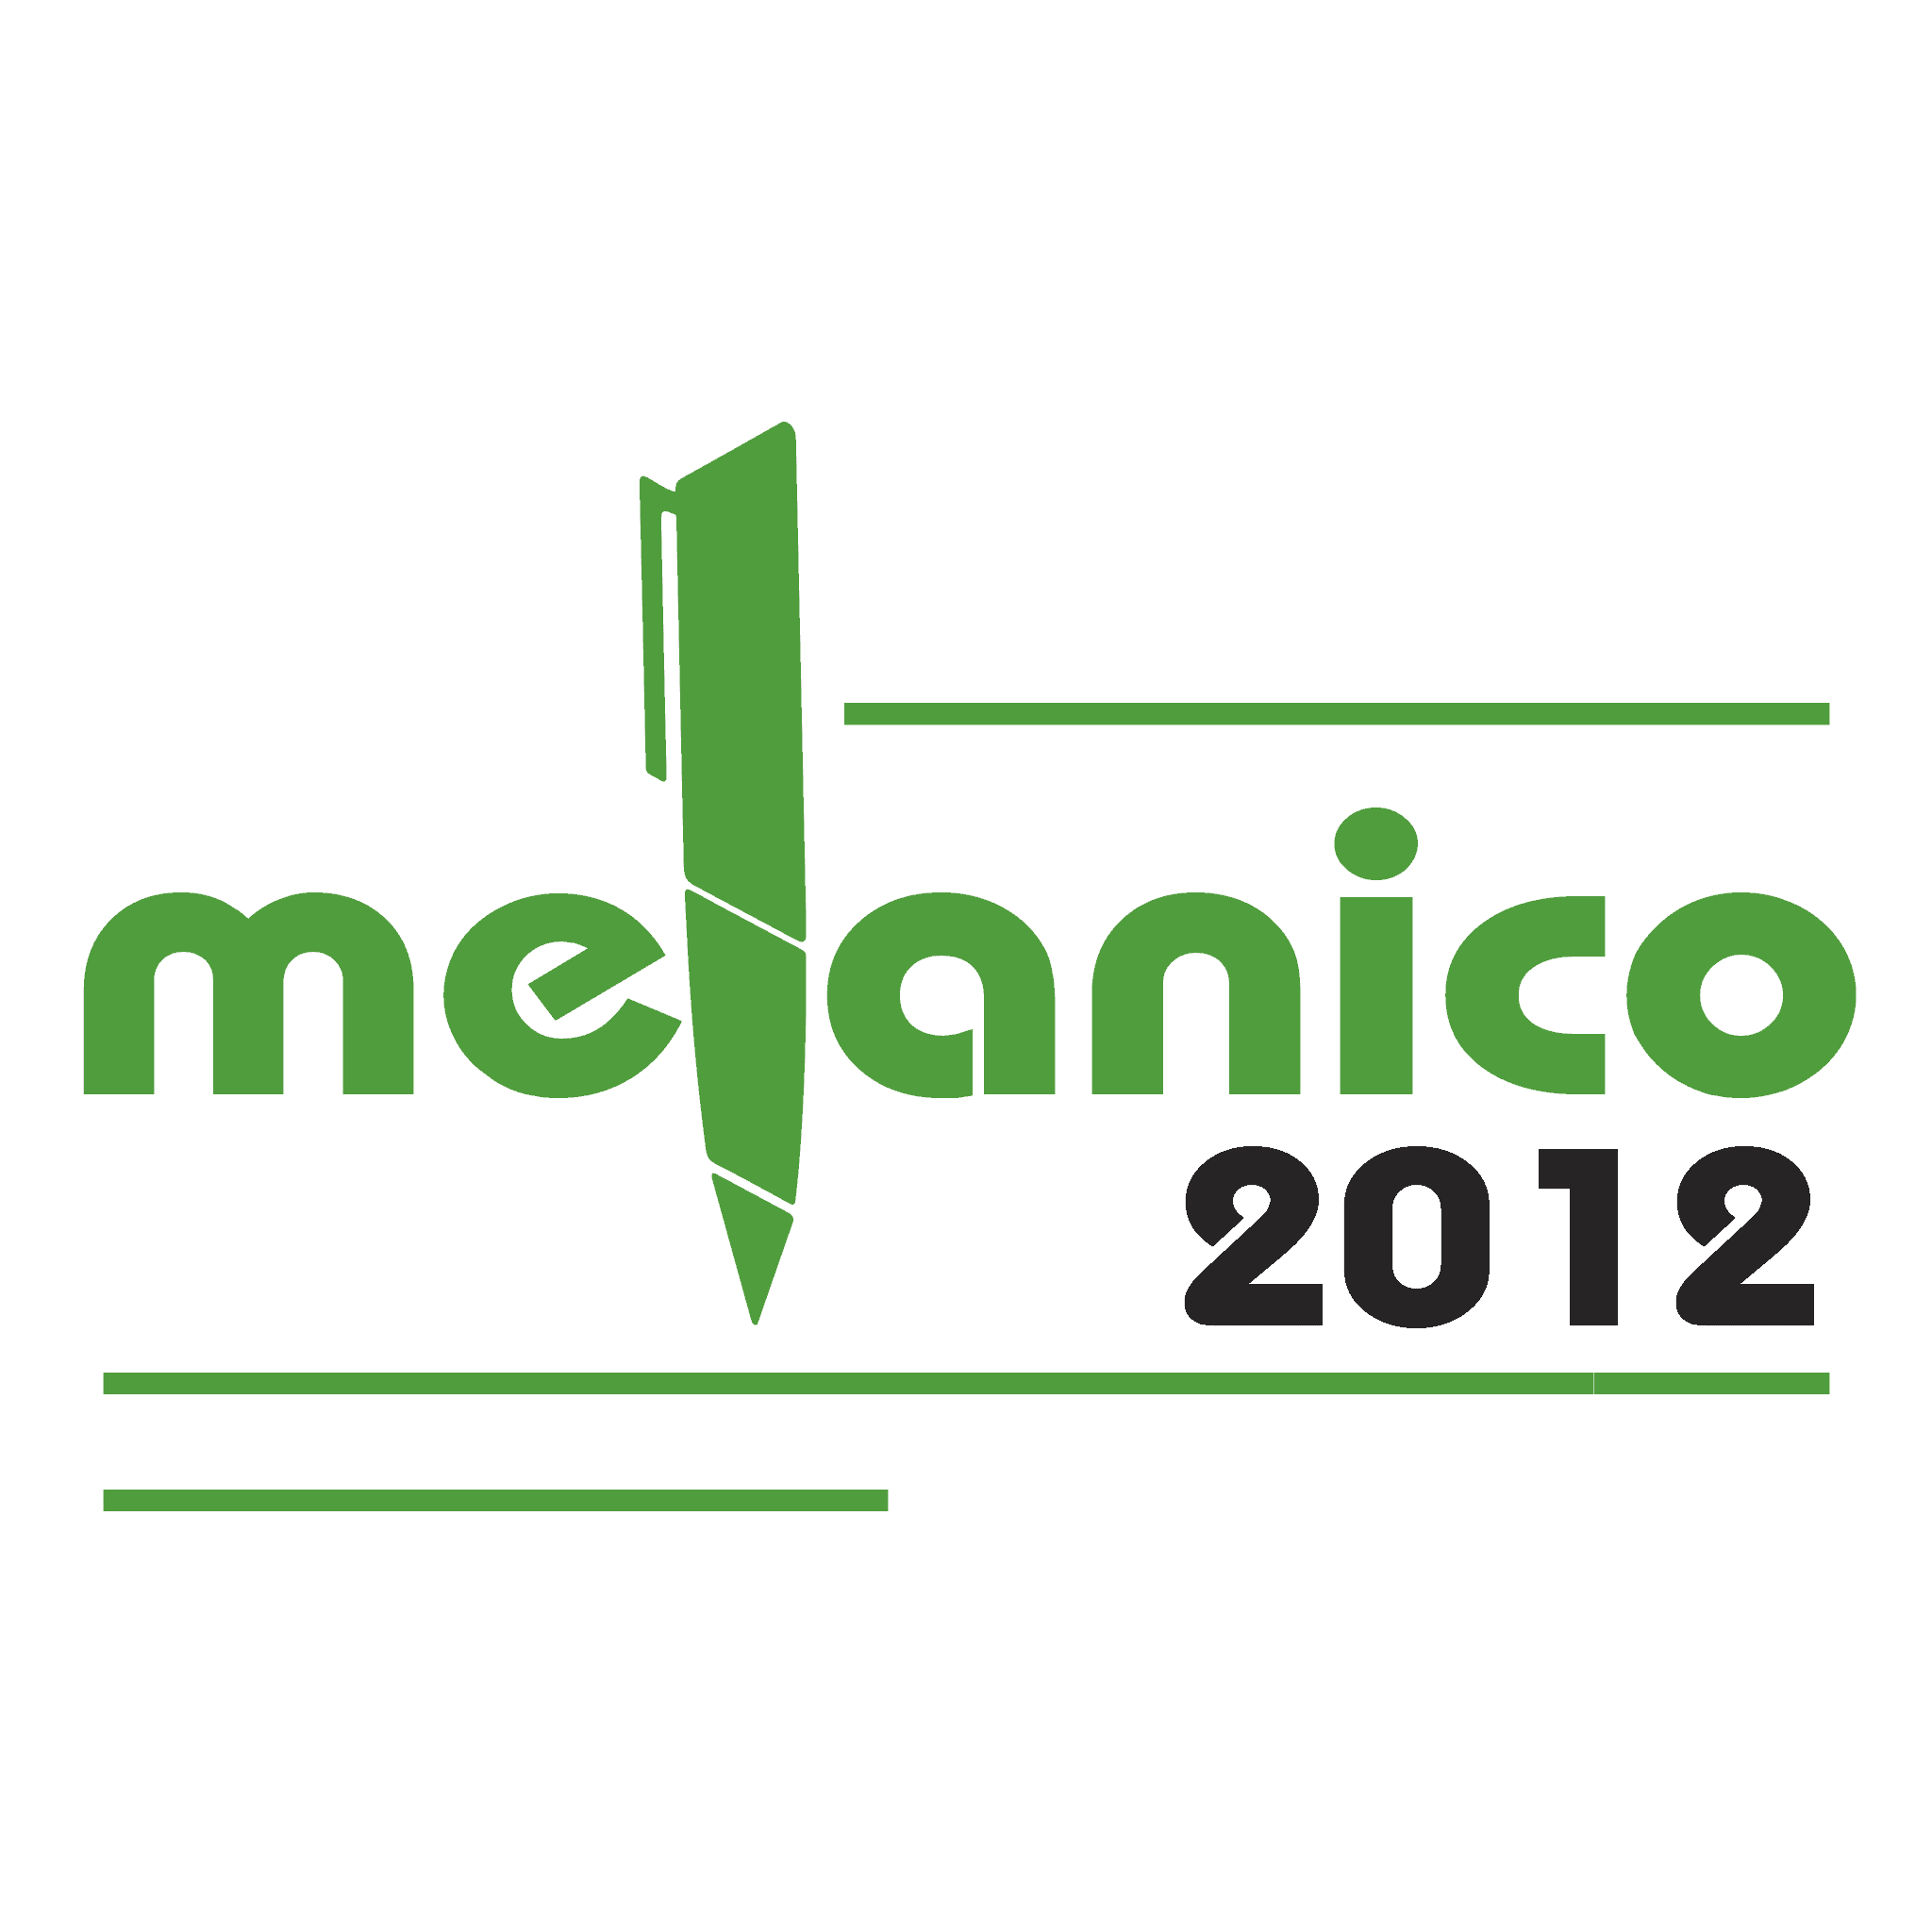 MELANICO LTD